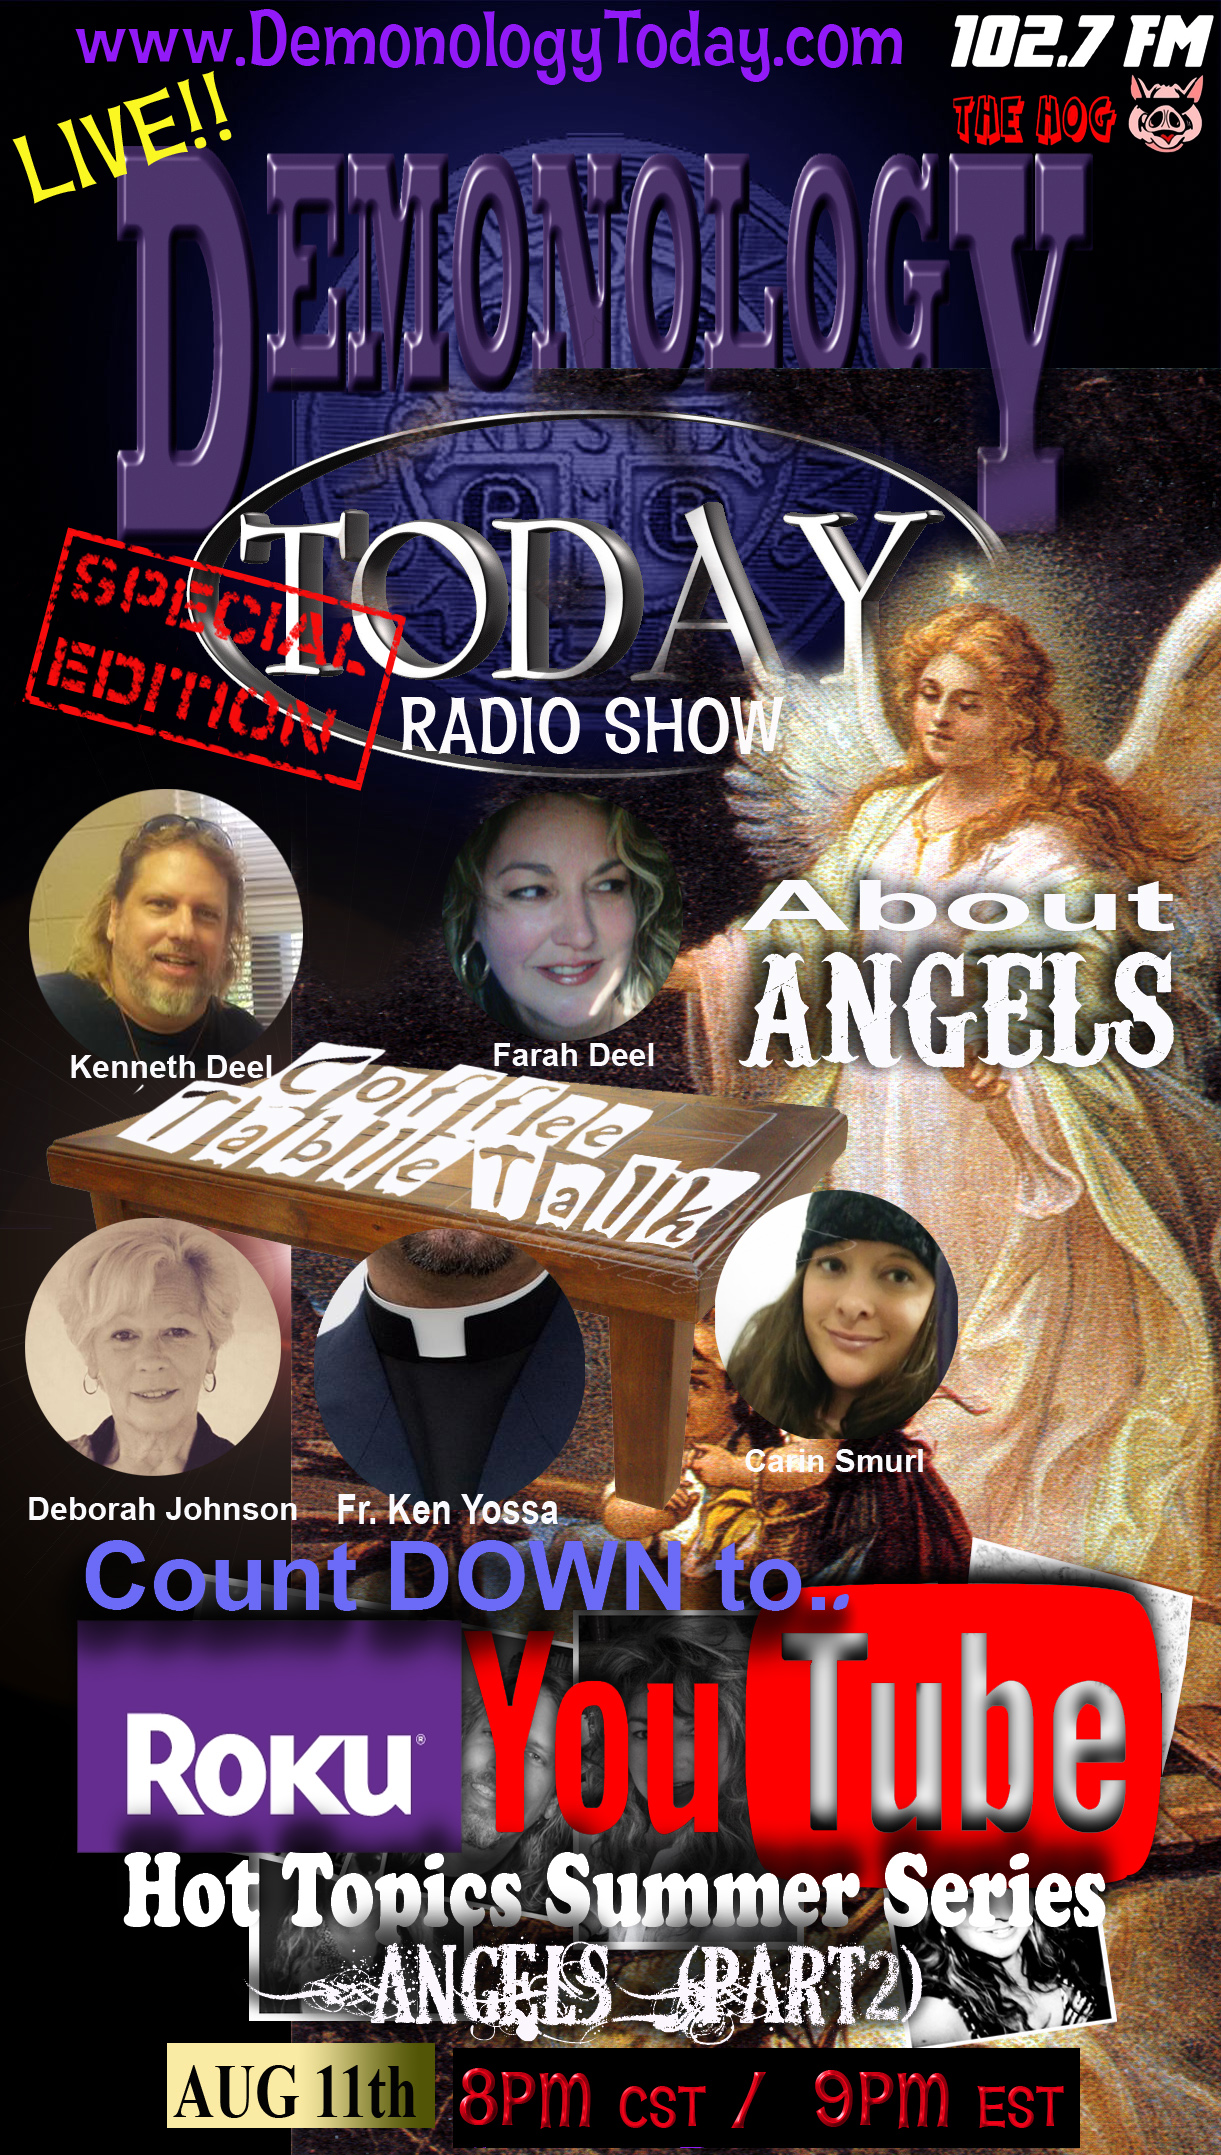 DTRADIO - Angels w/ Fr. Ken